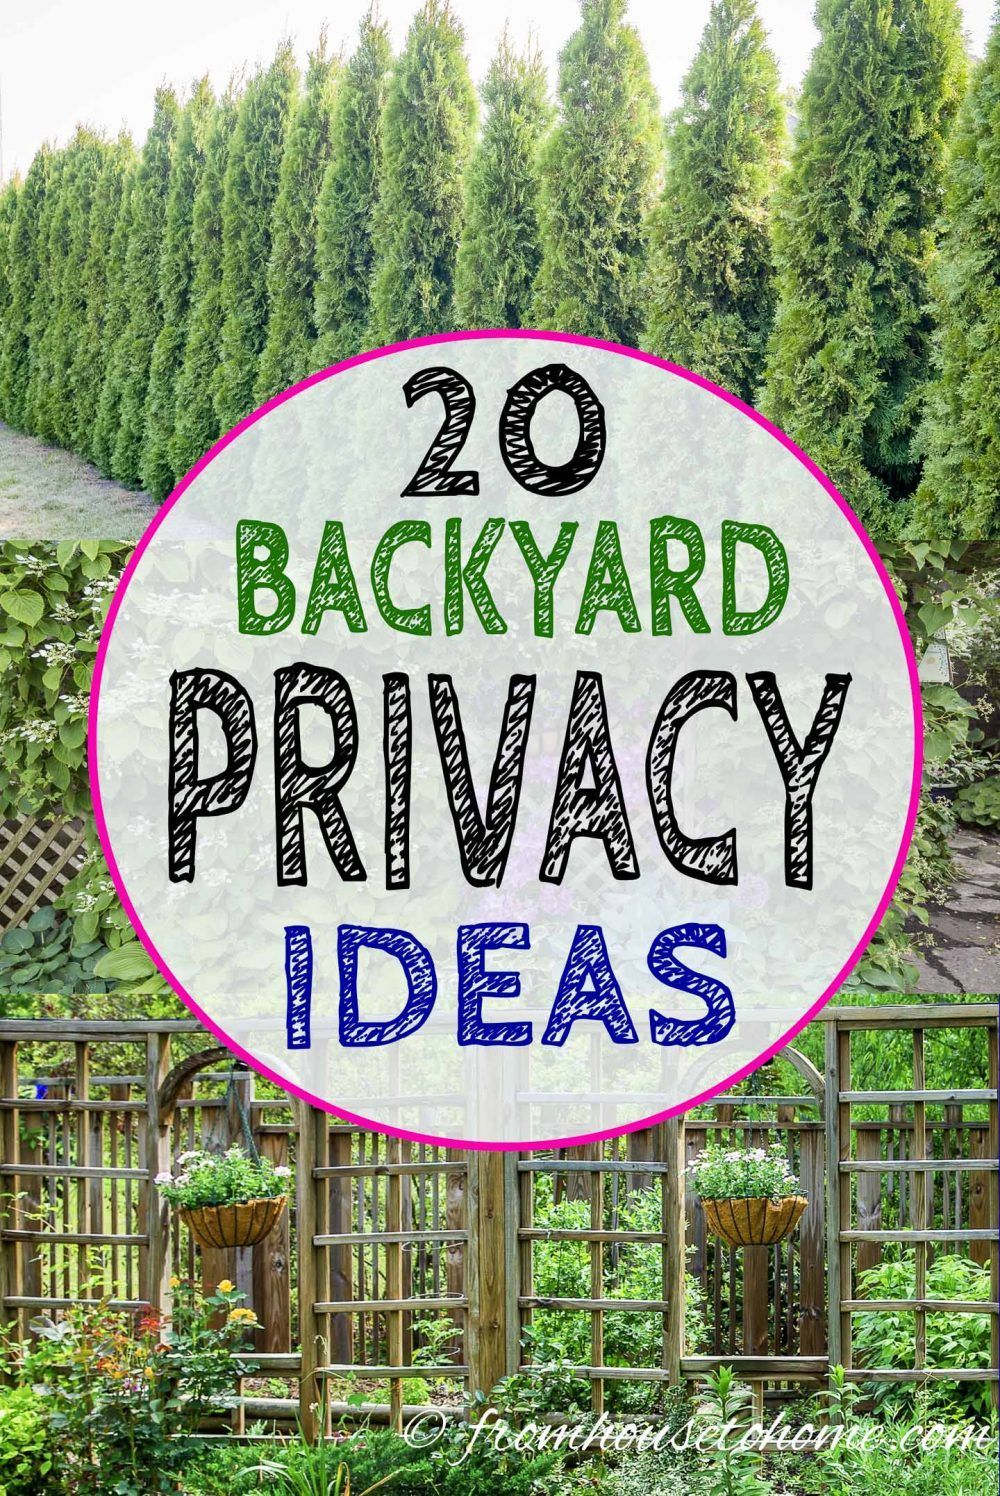 20 Backyard Privacy Ideas For Screening Neighbors Out Gardening From House To Home In 2020 Backyard Privacy Privacy Landscaping Backyard Privacy Screen